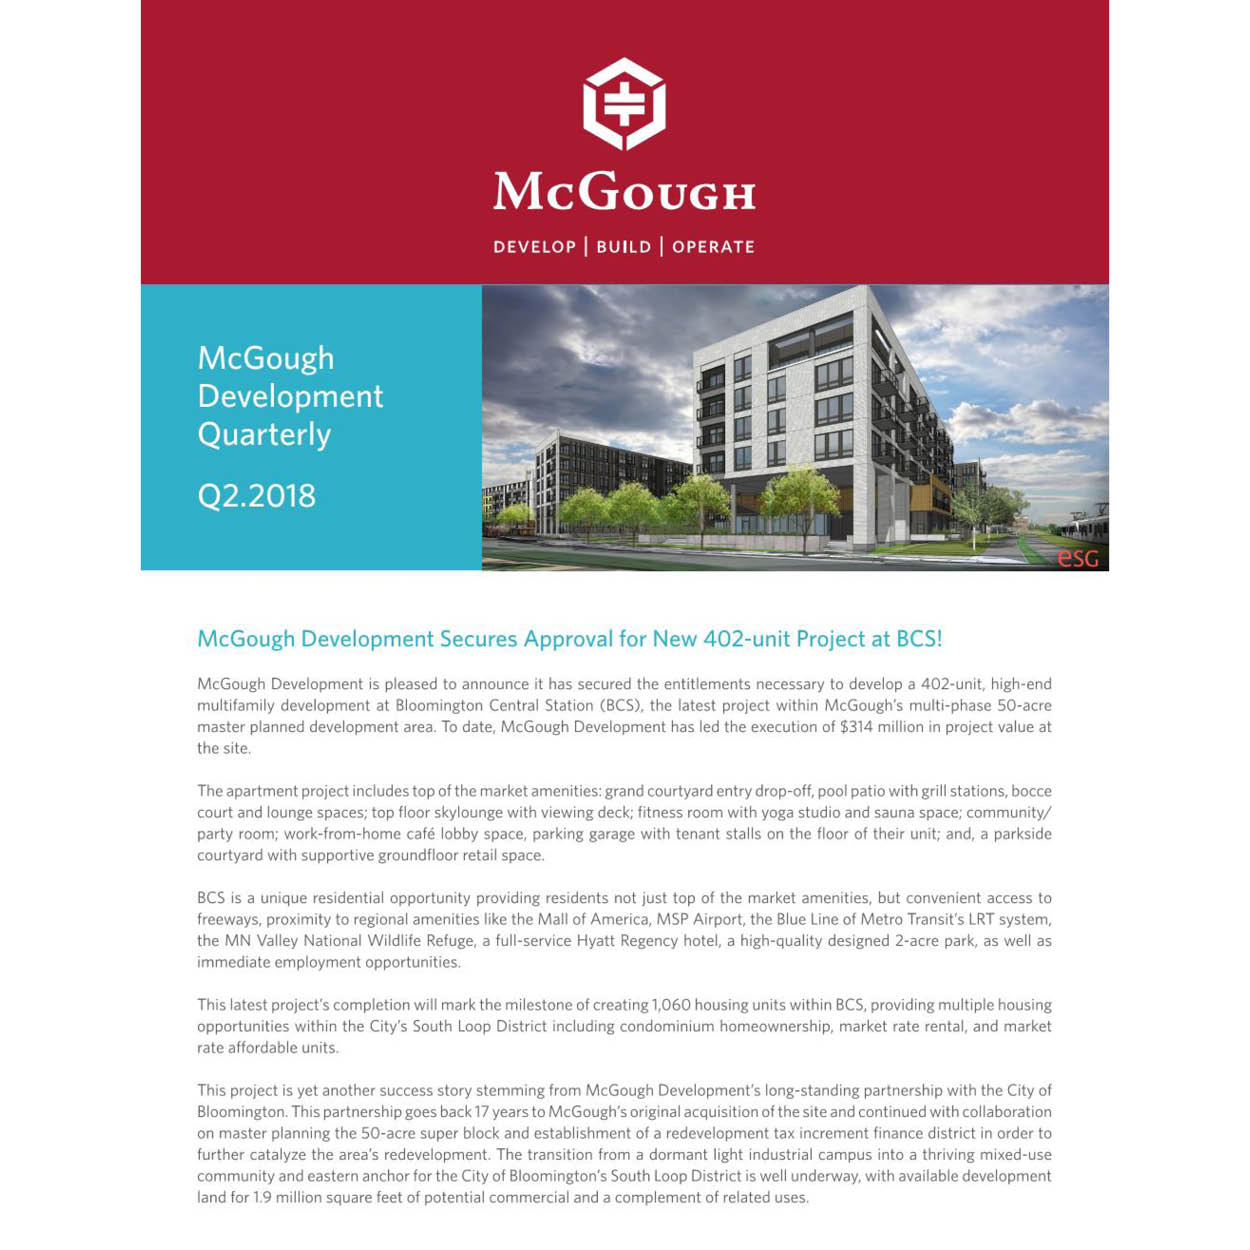 McGough Development Quarterly Newsletter Q2 2018